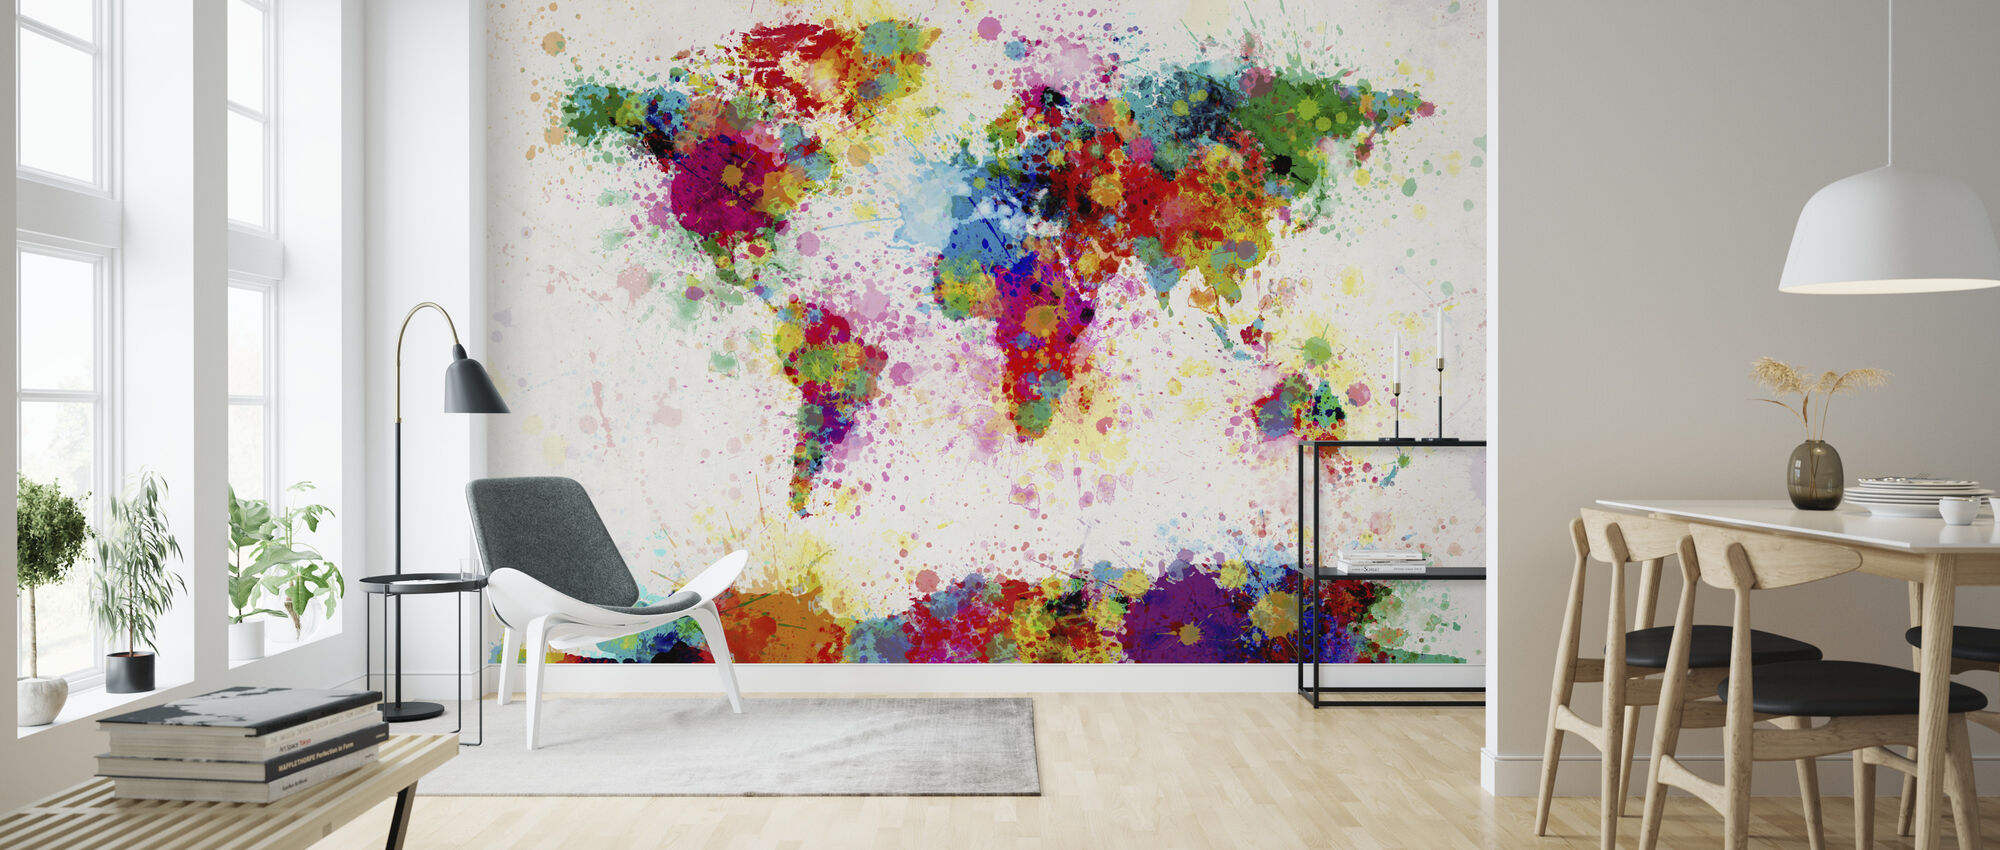 Paint Splashes Map - Wallpaper - Living Room